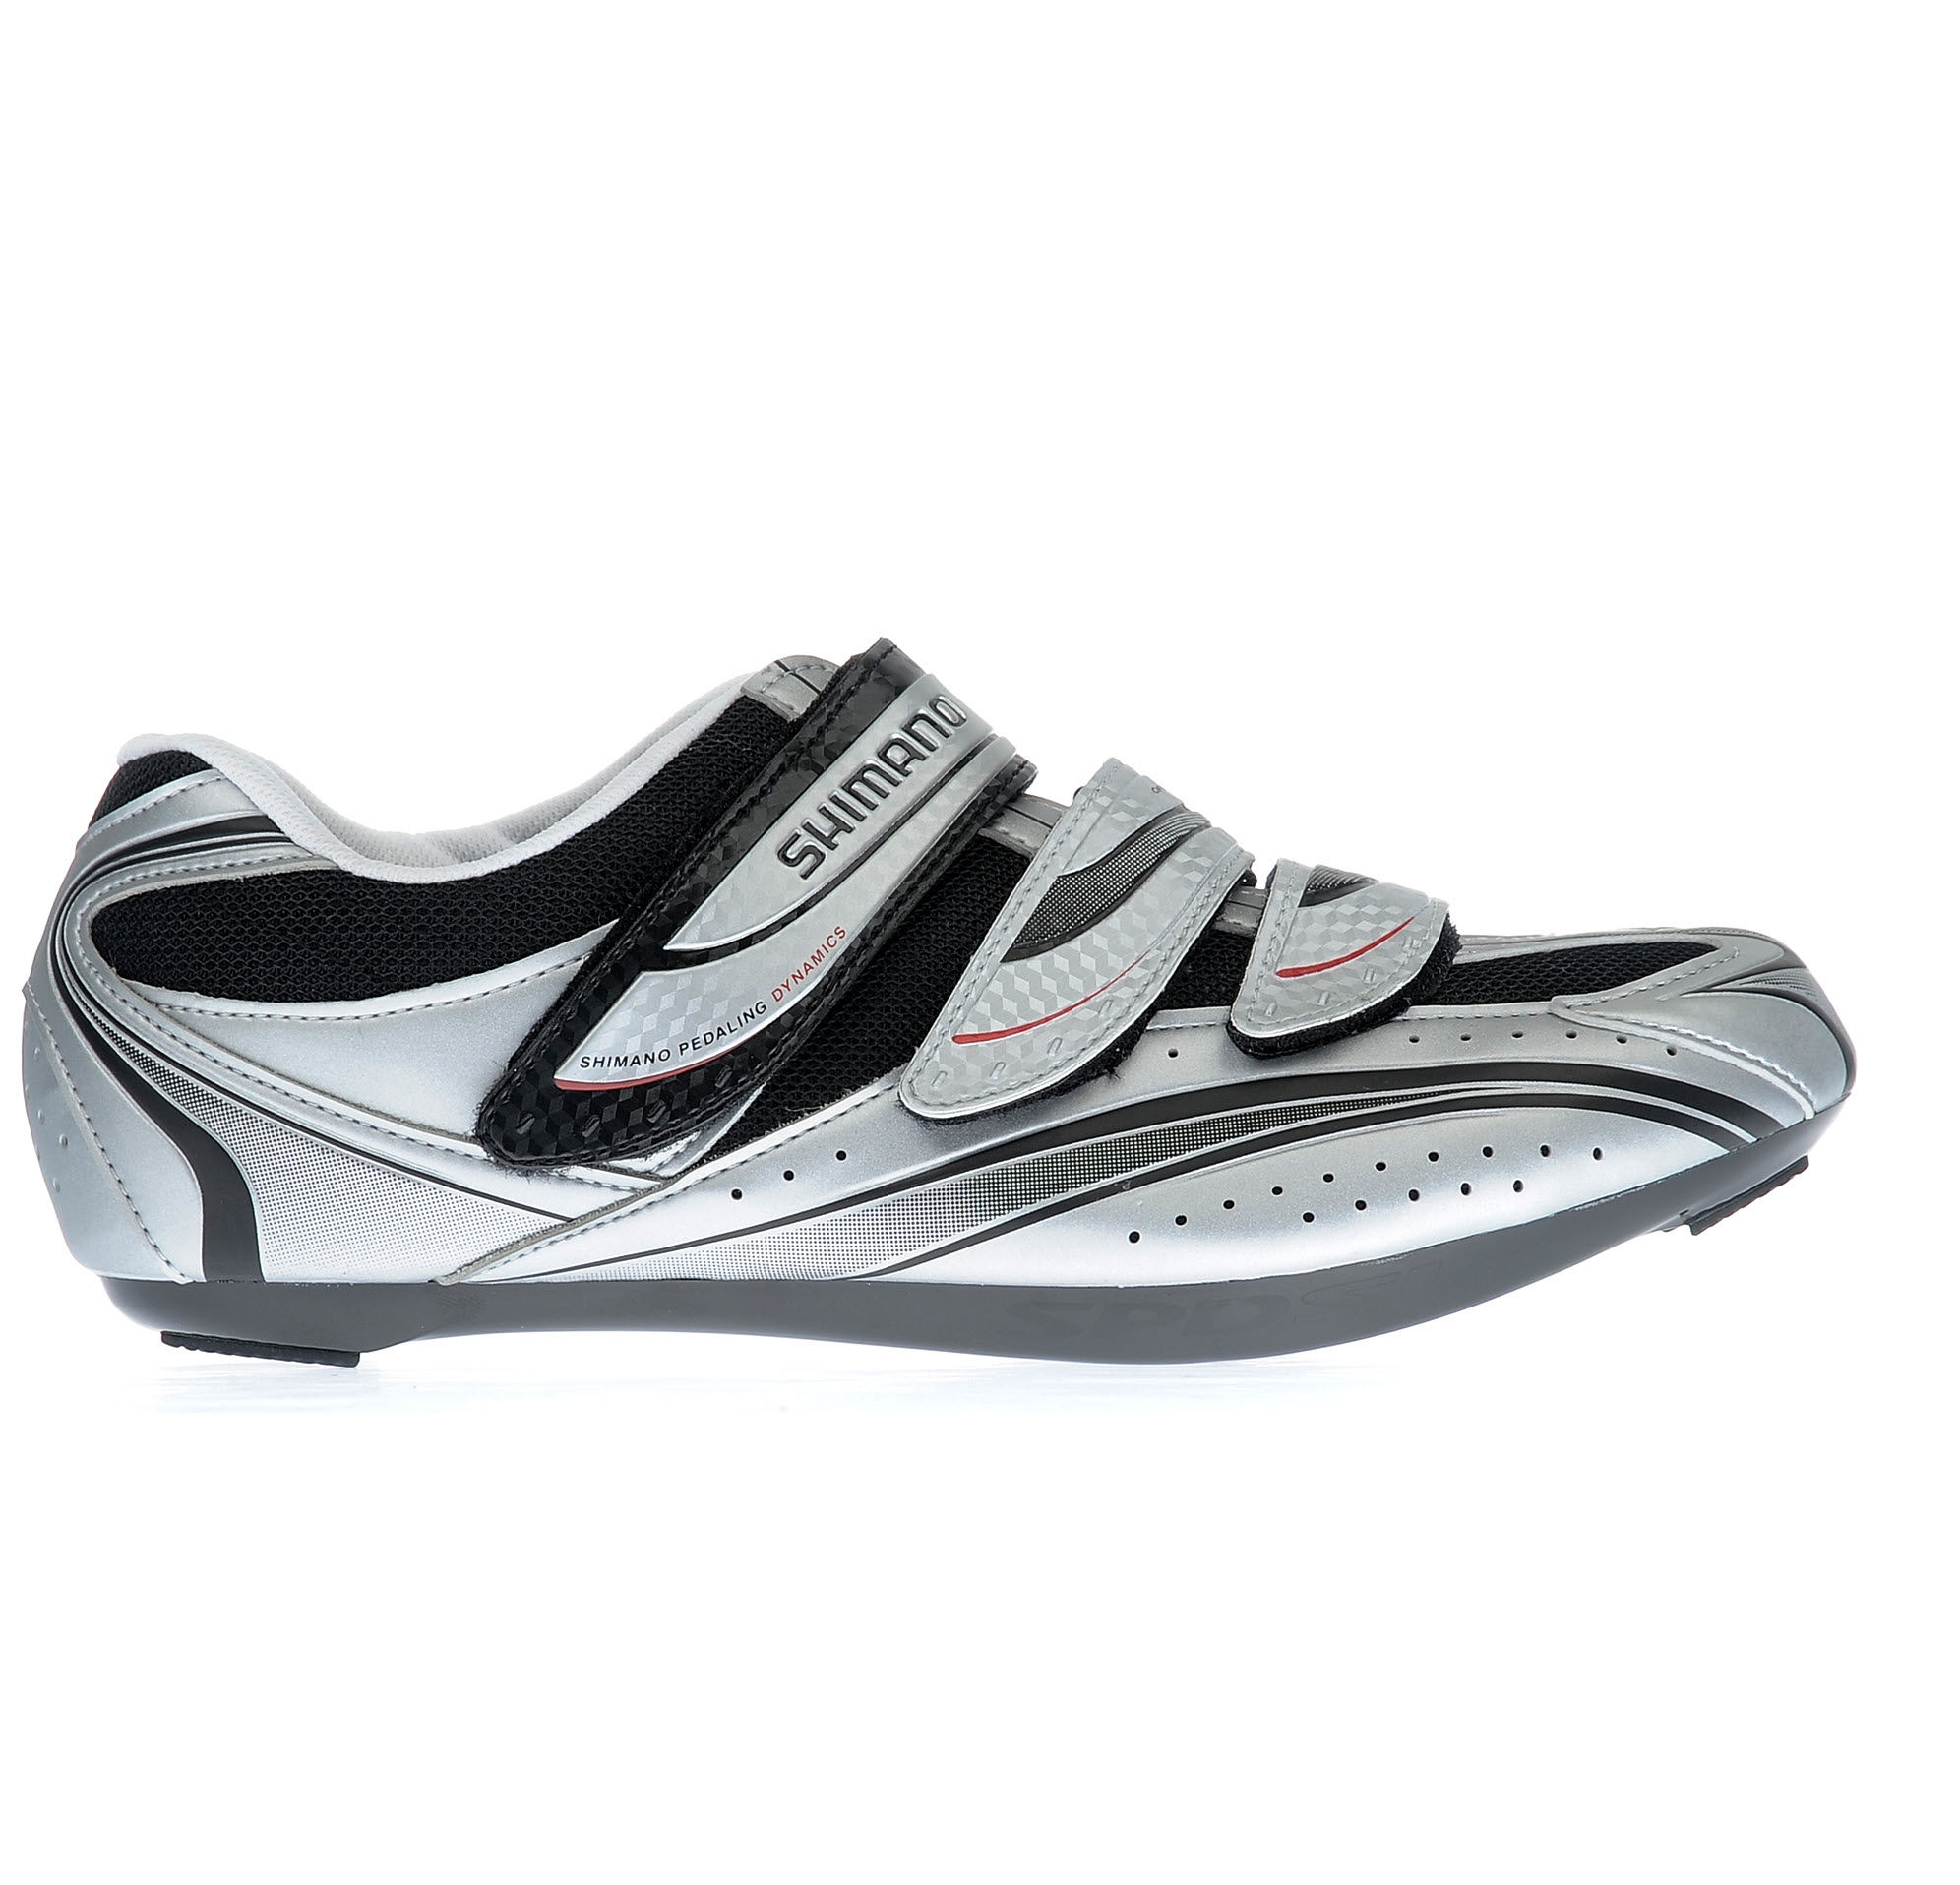 Help with Shimano Road Shoes size/fit